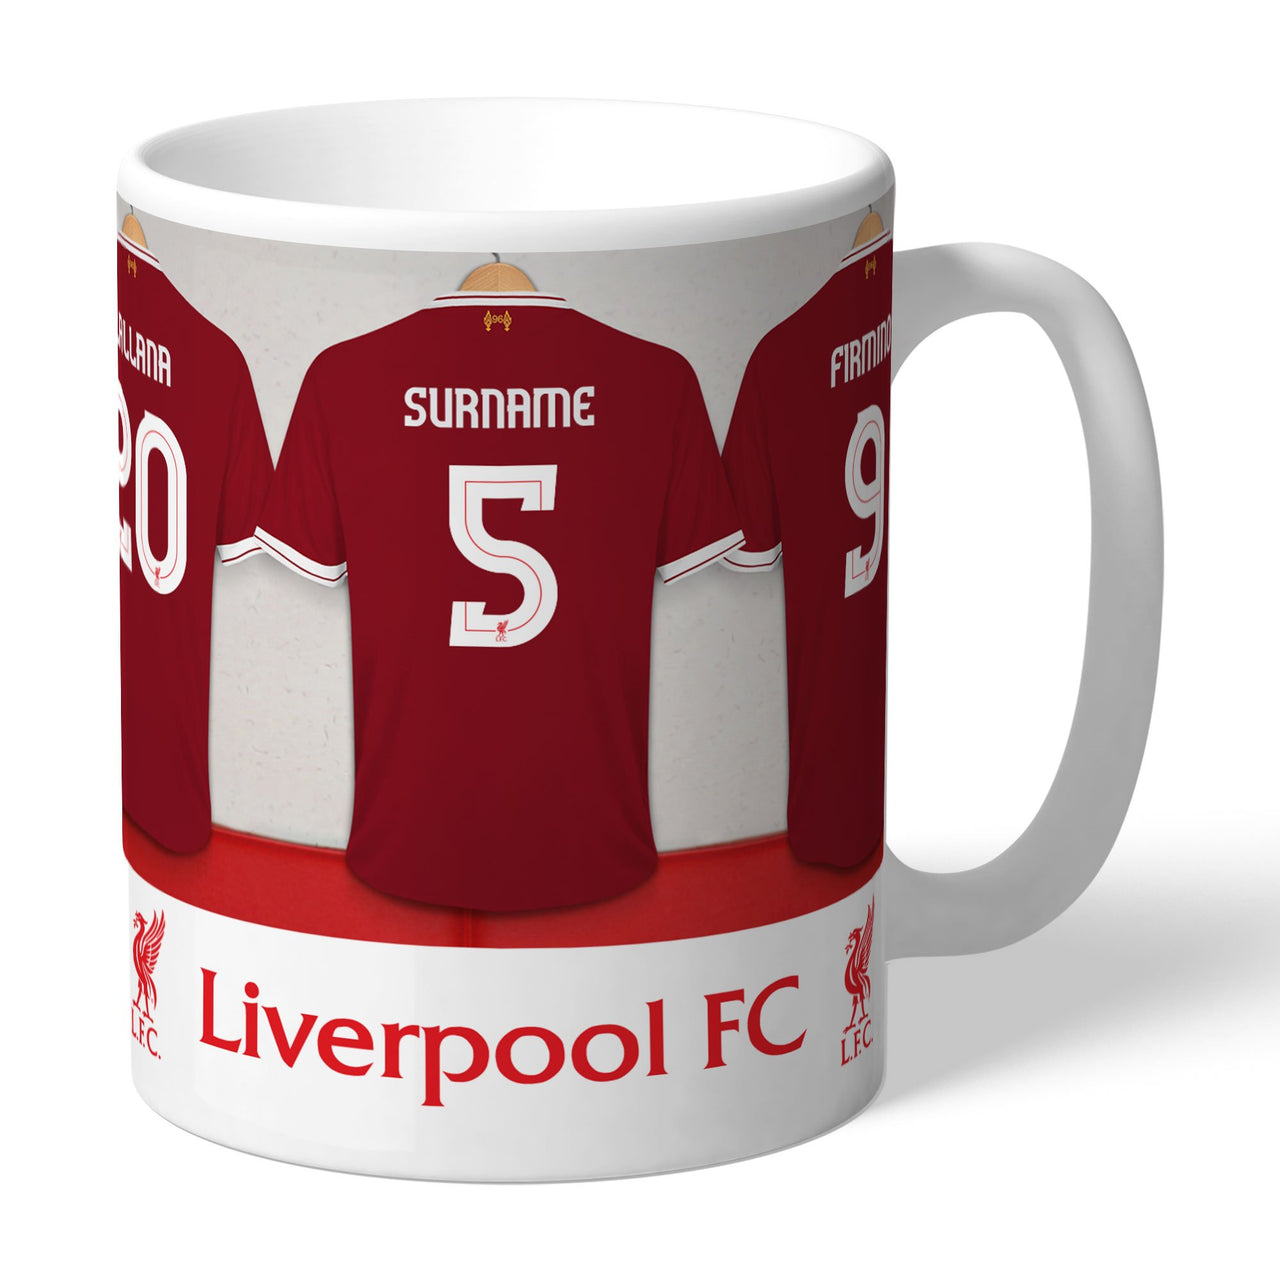 Liverpool FC Dressing Room Mugs, Gifts